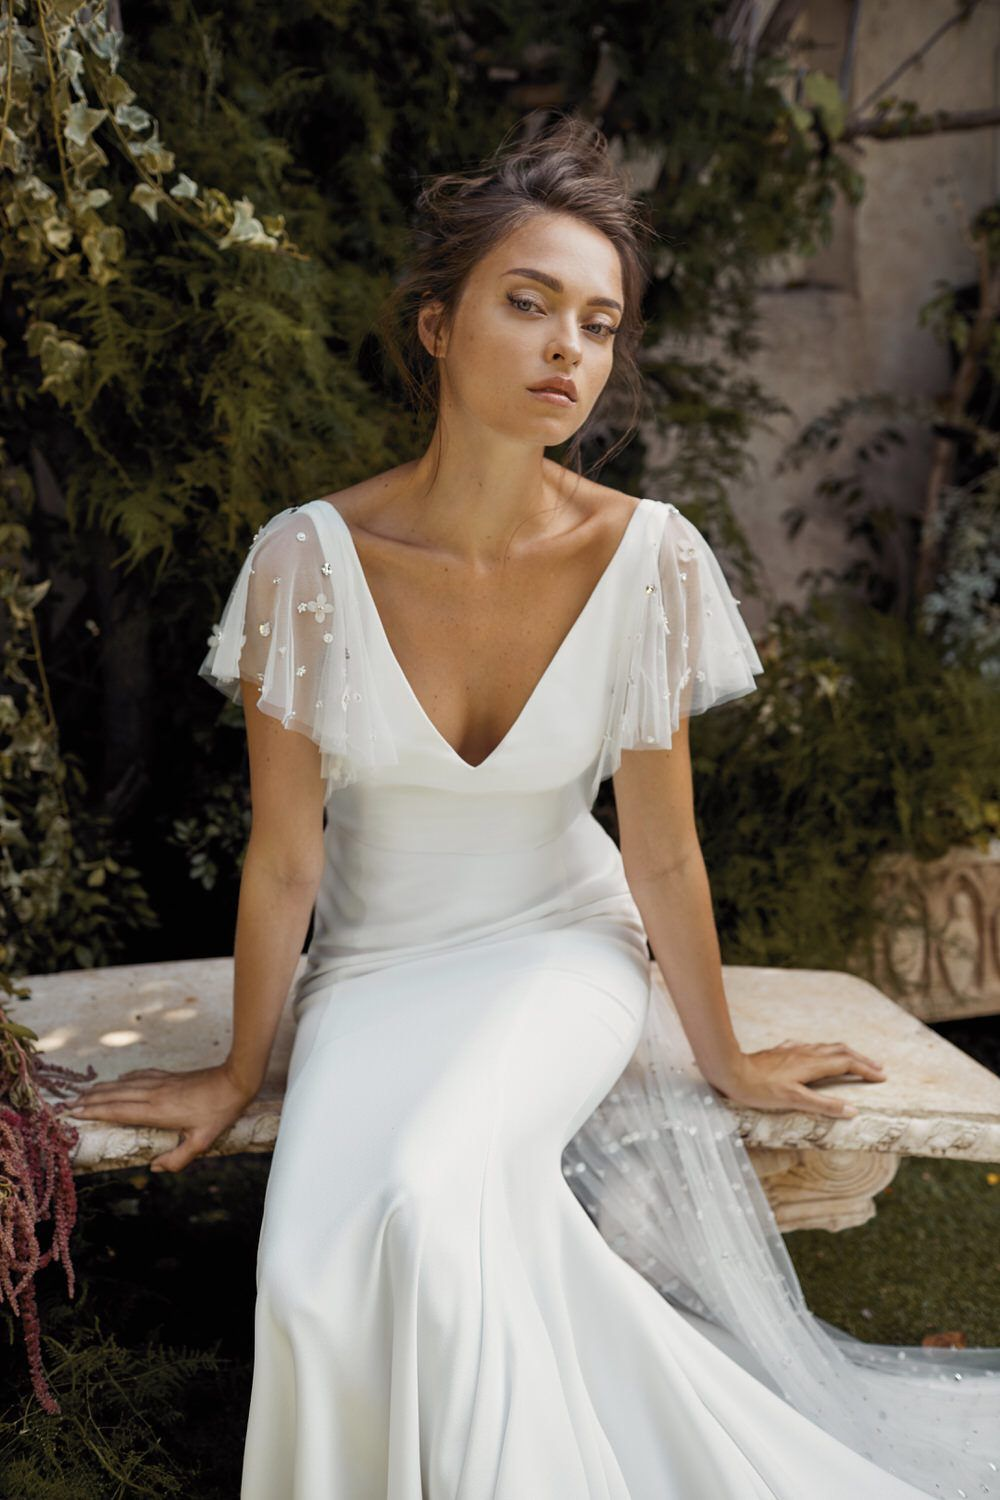 The Fall 2020 Bridal Collection by Lihi Hod is a dream come true! With silk organza, beaded tulles and handmade three-dimensional flowers it is no wonder why we catch ourselves daydreaming about these wedding dresses!